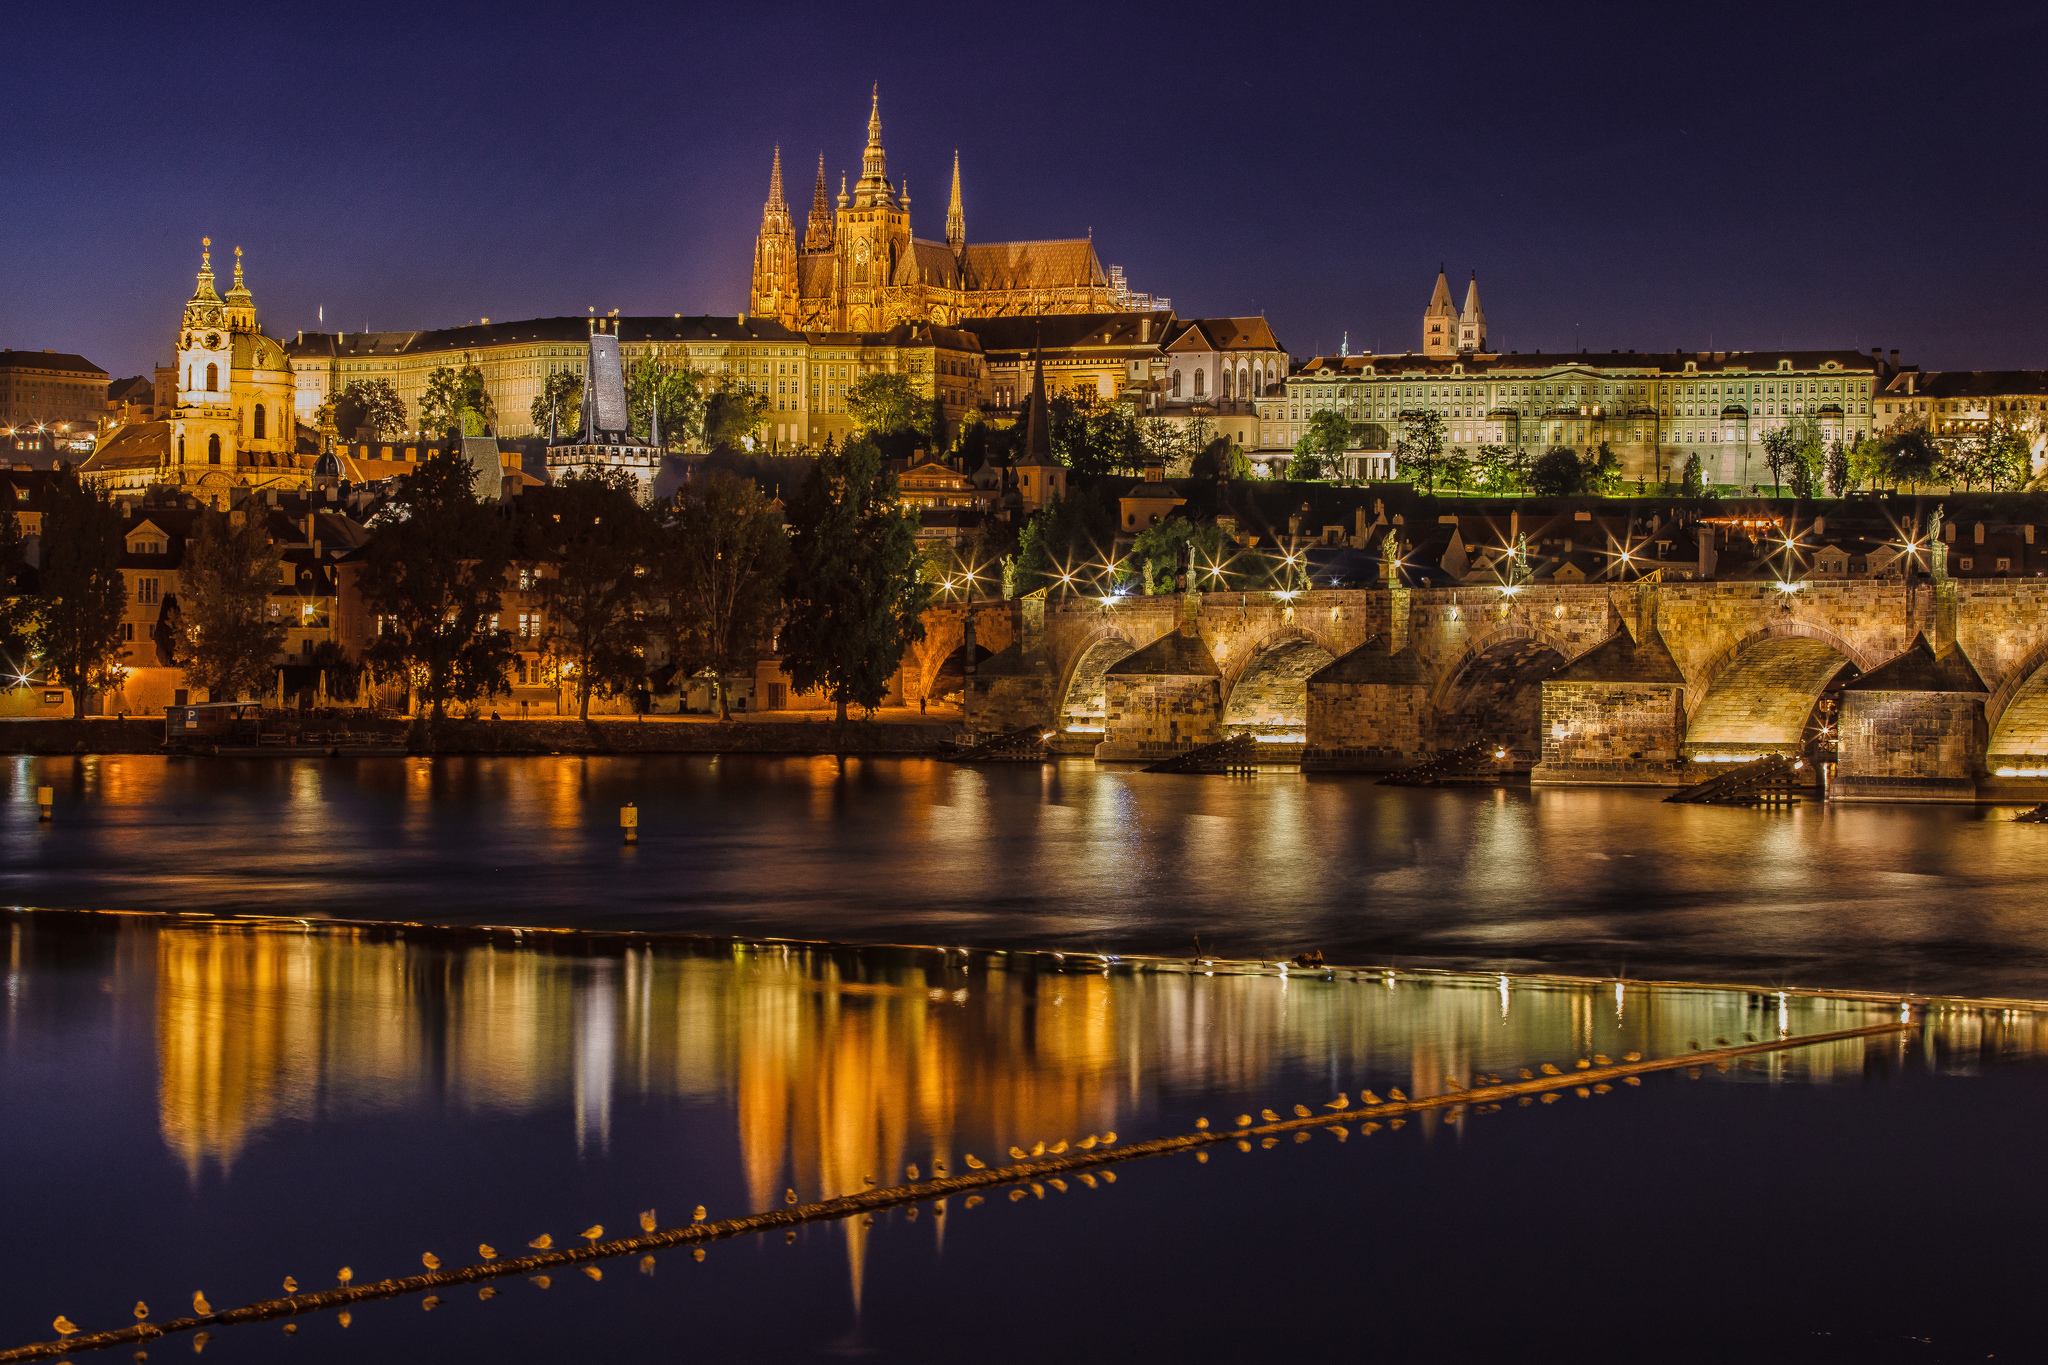 Prague-city-night-Vltava-river-medieval-palace-beauty.jpg